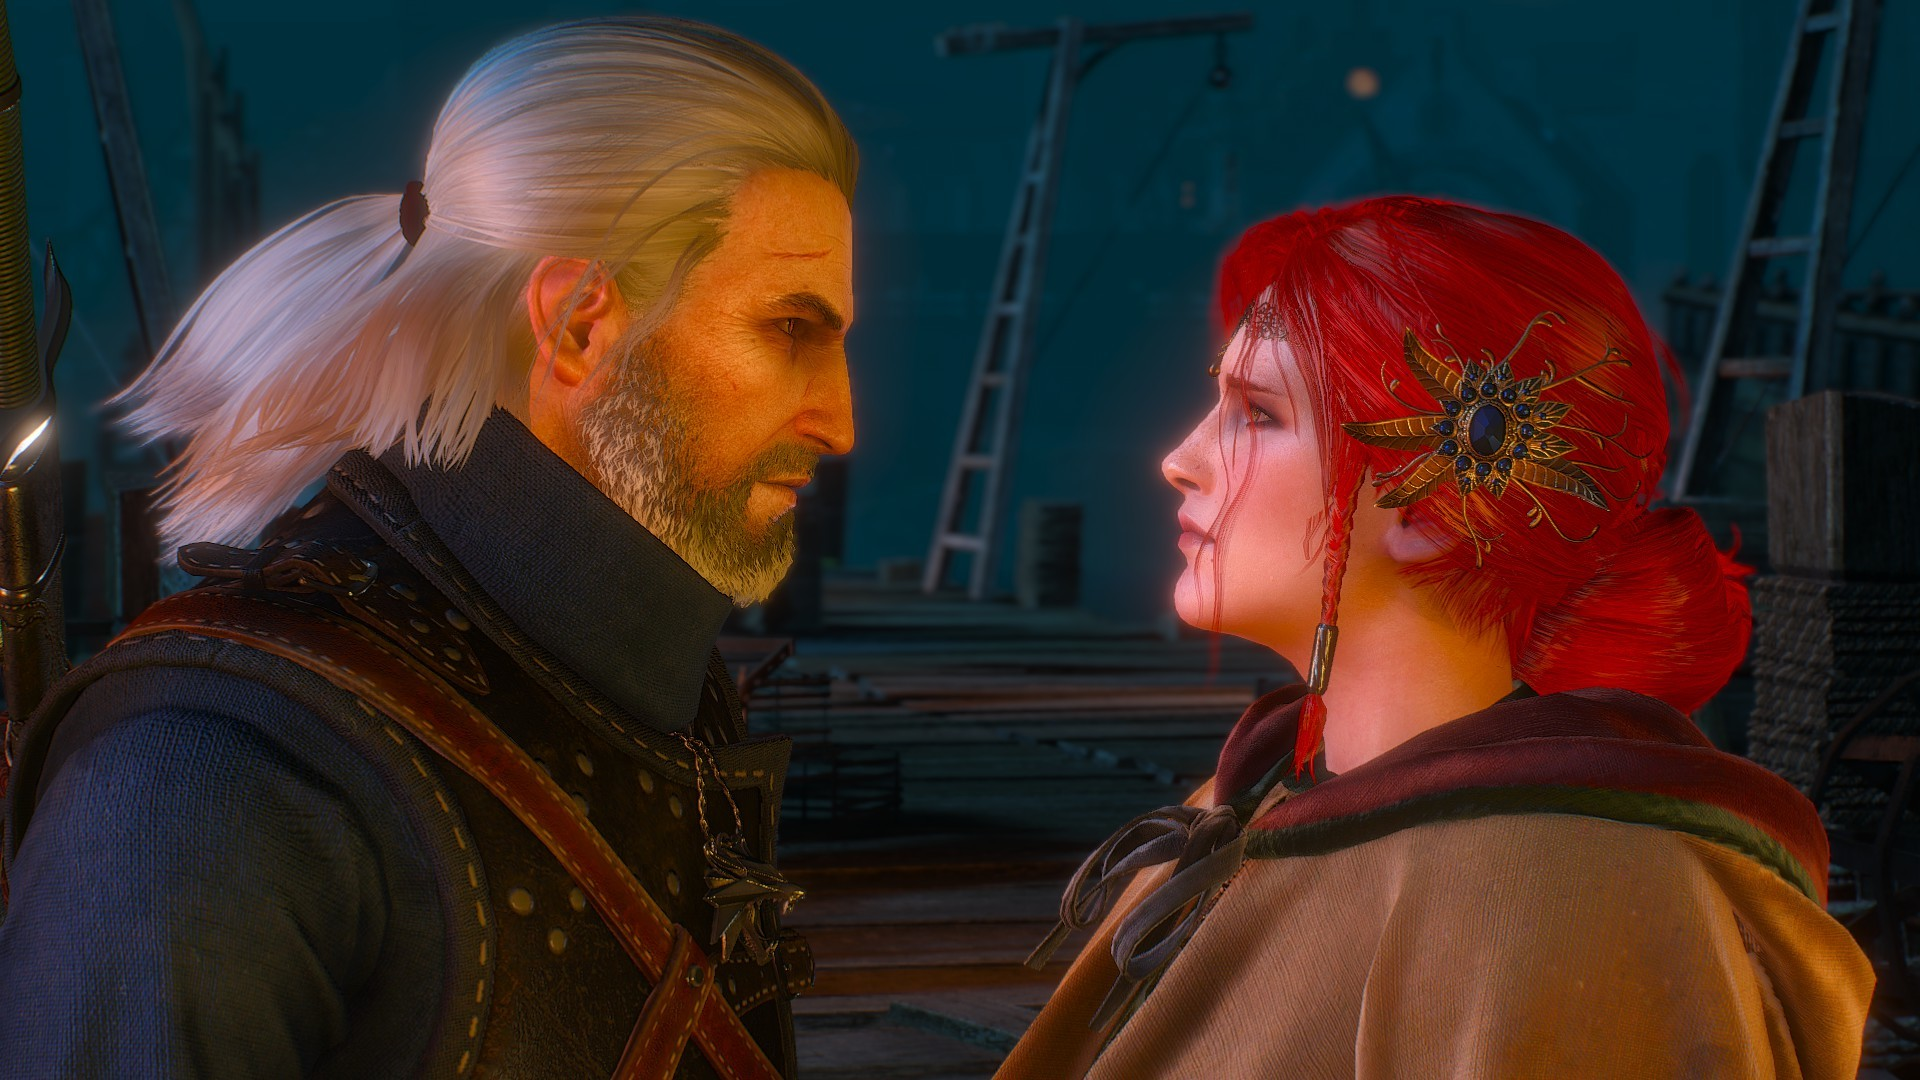 … The Witcher 3 Geralt and Triss Wallpaper by Crishark